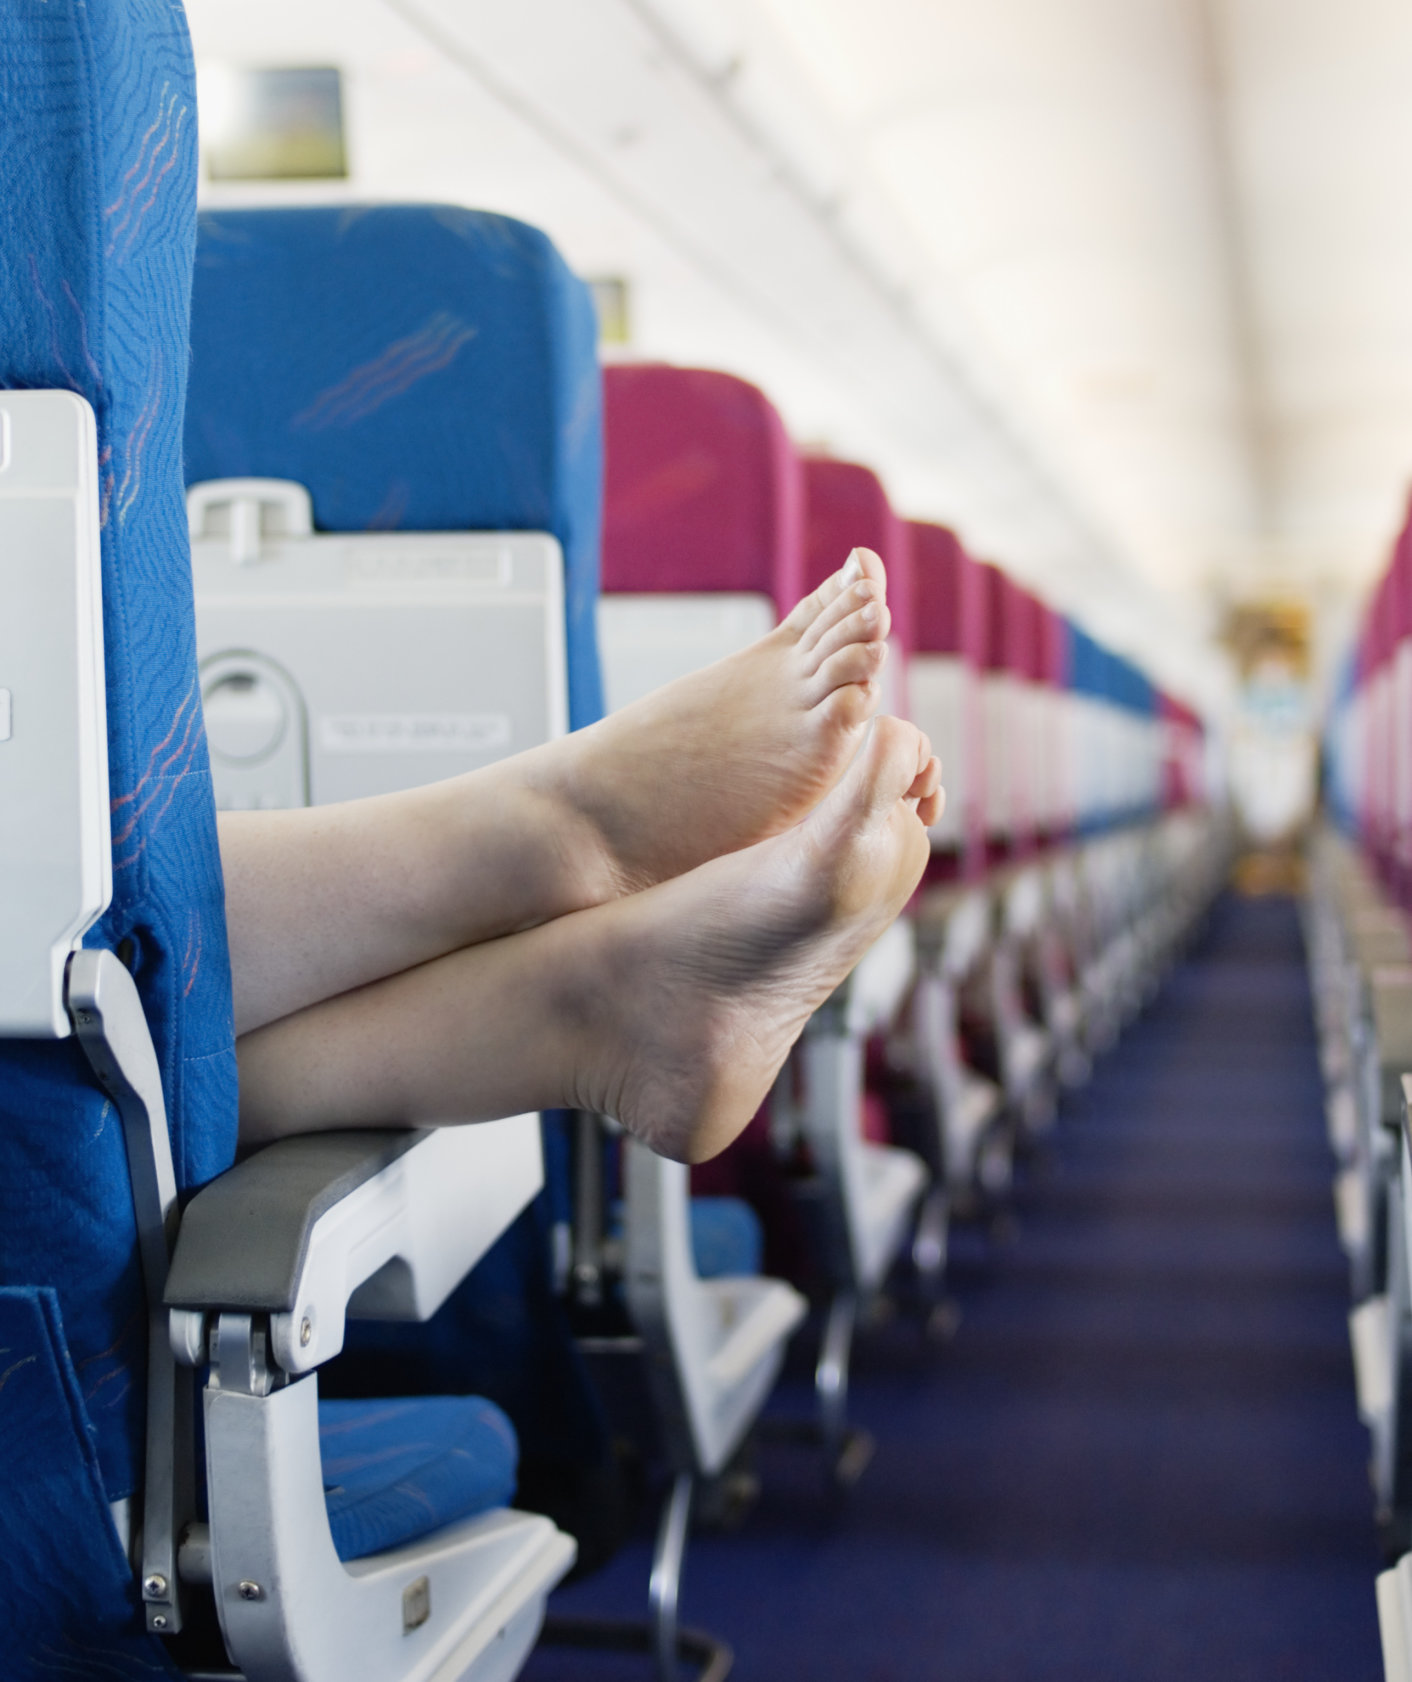 feet-in-airplane